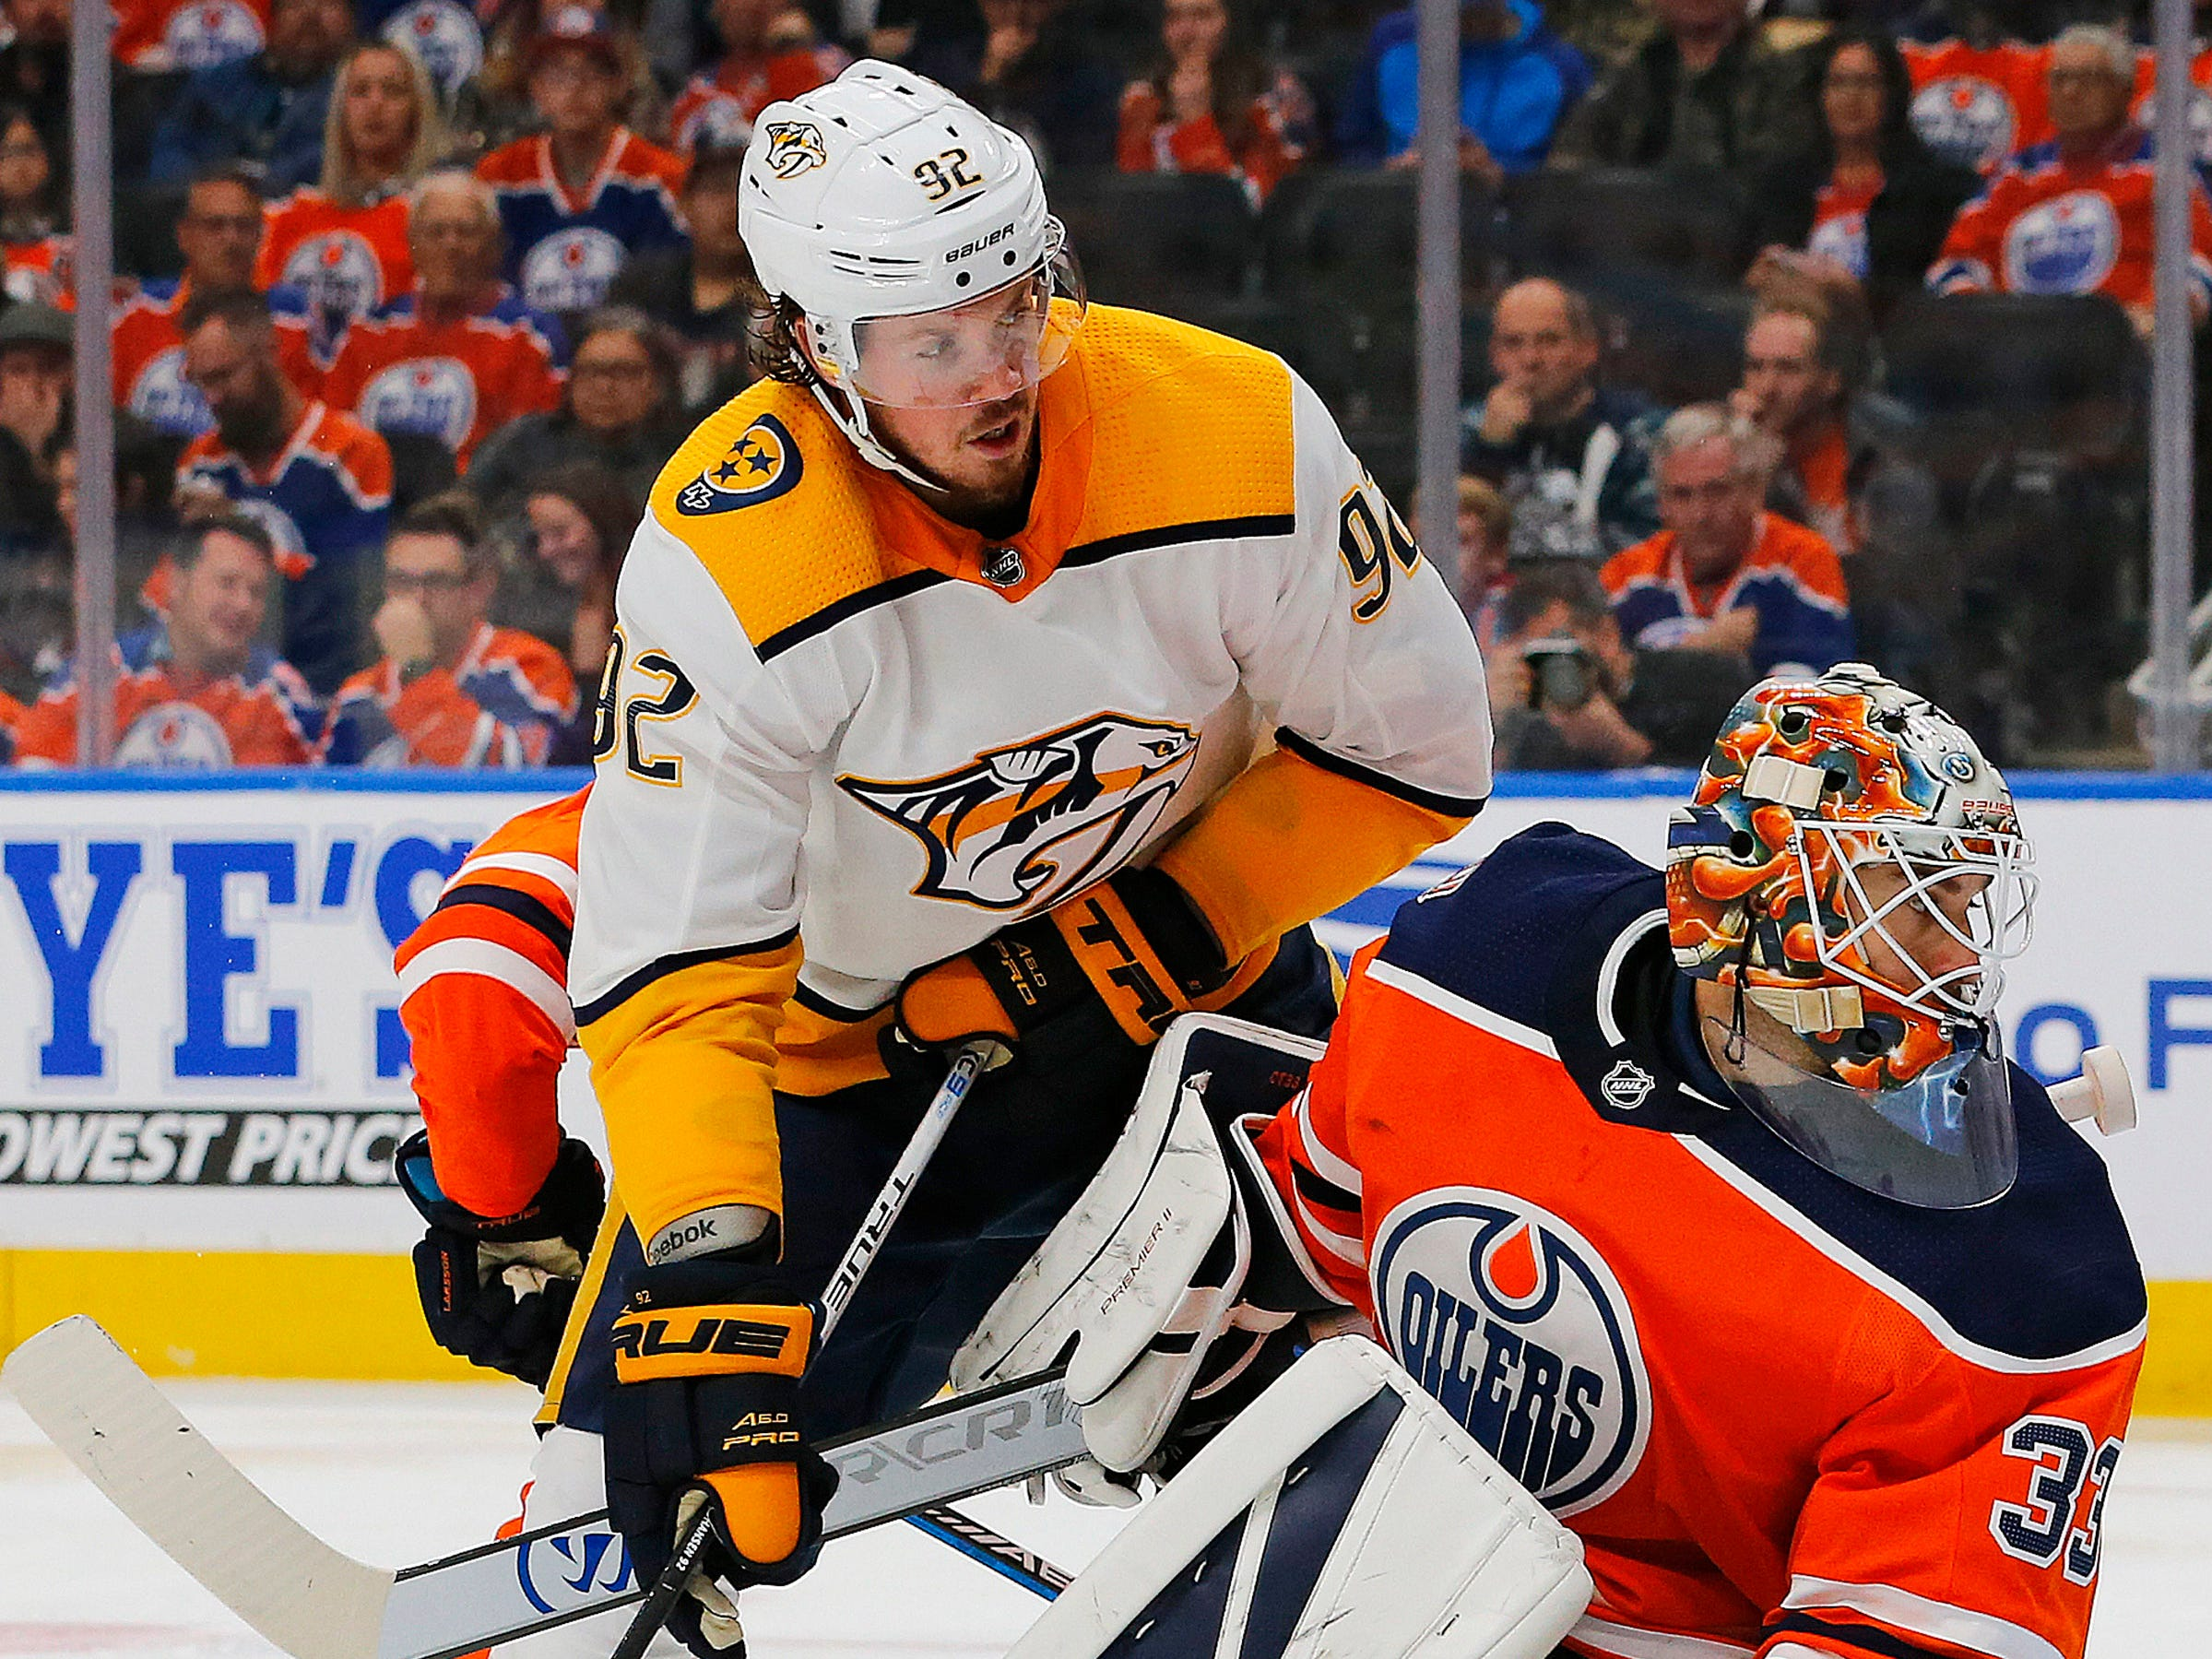 Nashville Predators forward Ryan Johansen (92) and Edmonton Oilers goaltender Cam Talbot (33) watch the puck during the second period at Rogers Place.